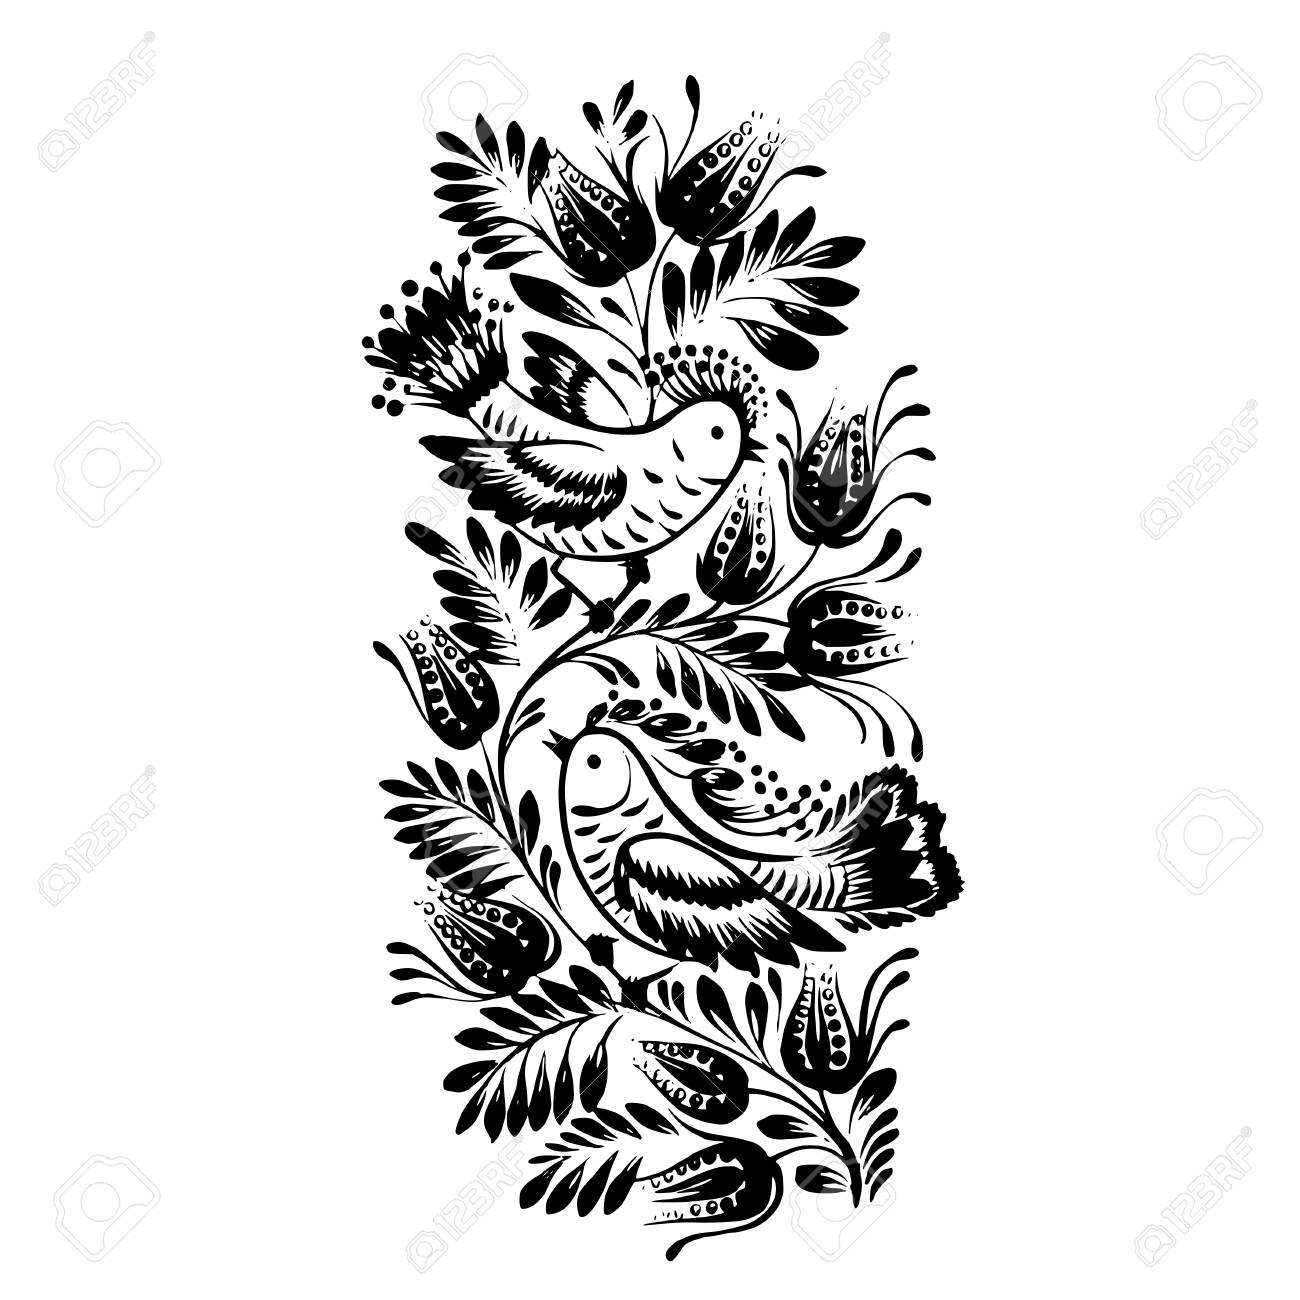 vector, artistic, decorative silhouette in grunge style Stock Vector - 26010673